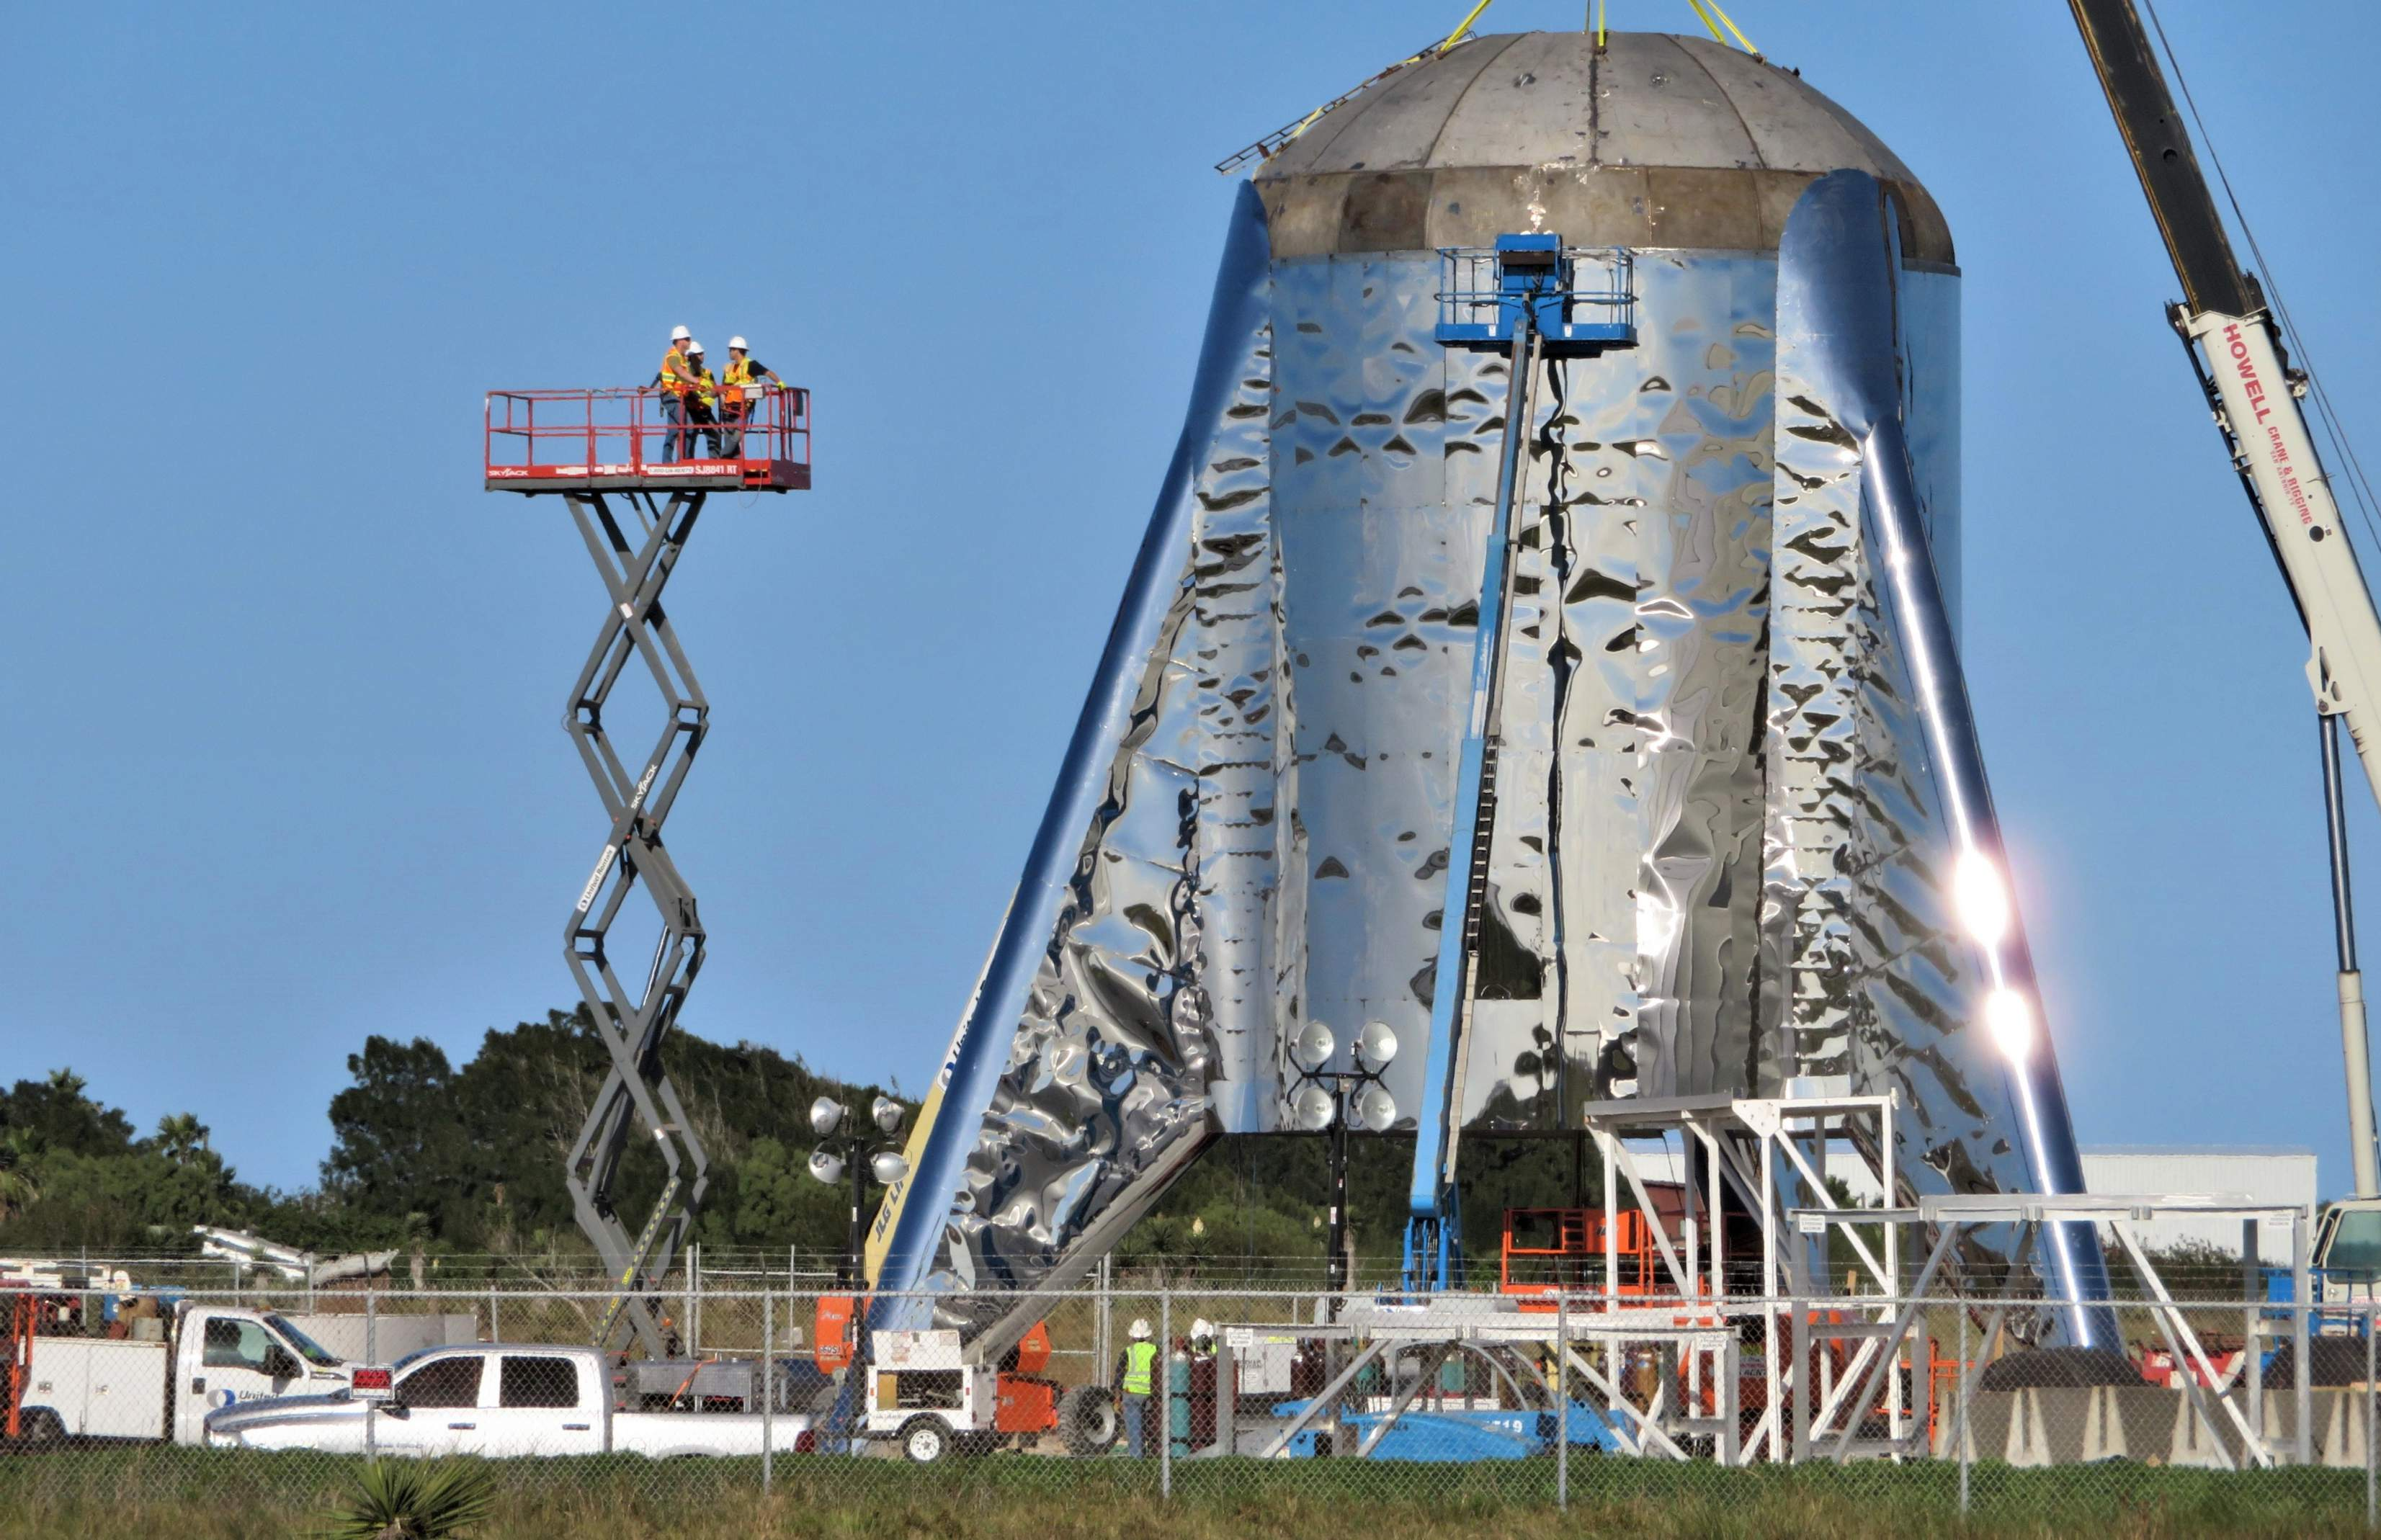 https://www.teslarati.com/wp-content/uploads/2019/01/Boca-Chica-Starship-final-dome-install-012419-NASASpaceflight-bocachicagal-3-crop-c.jpg